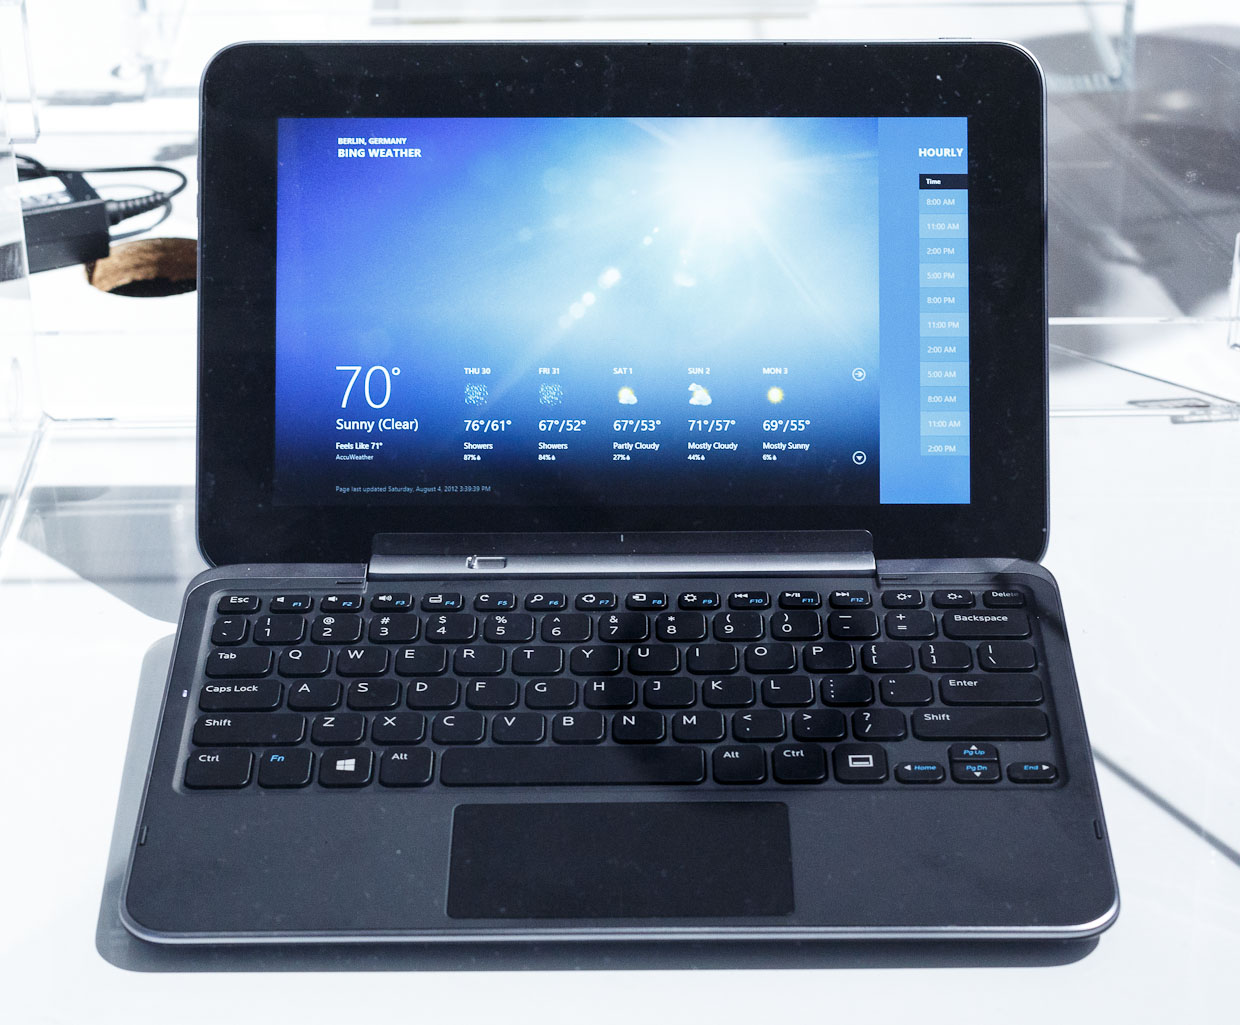 The Dell XPS 10 tablet shown with its keyboard attached.